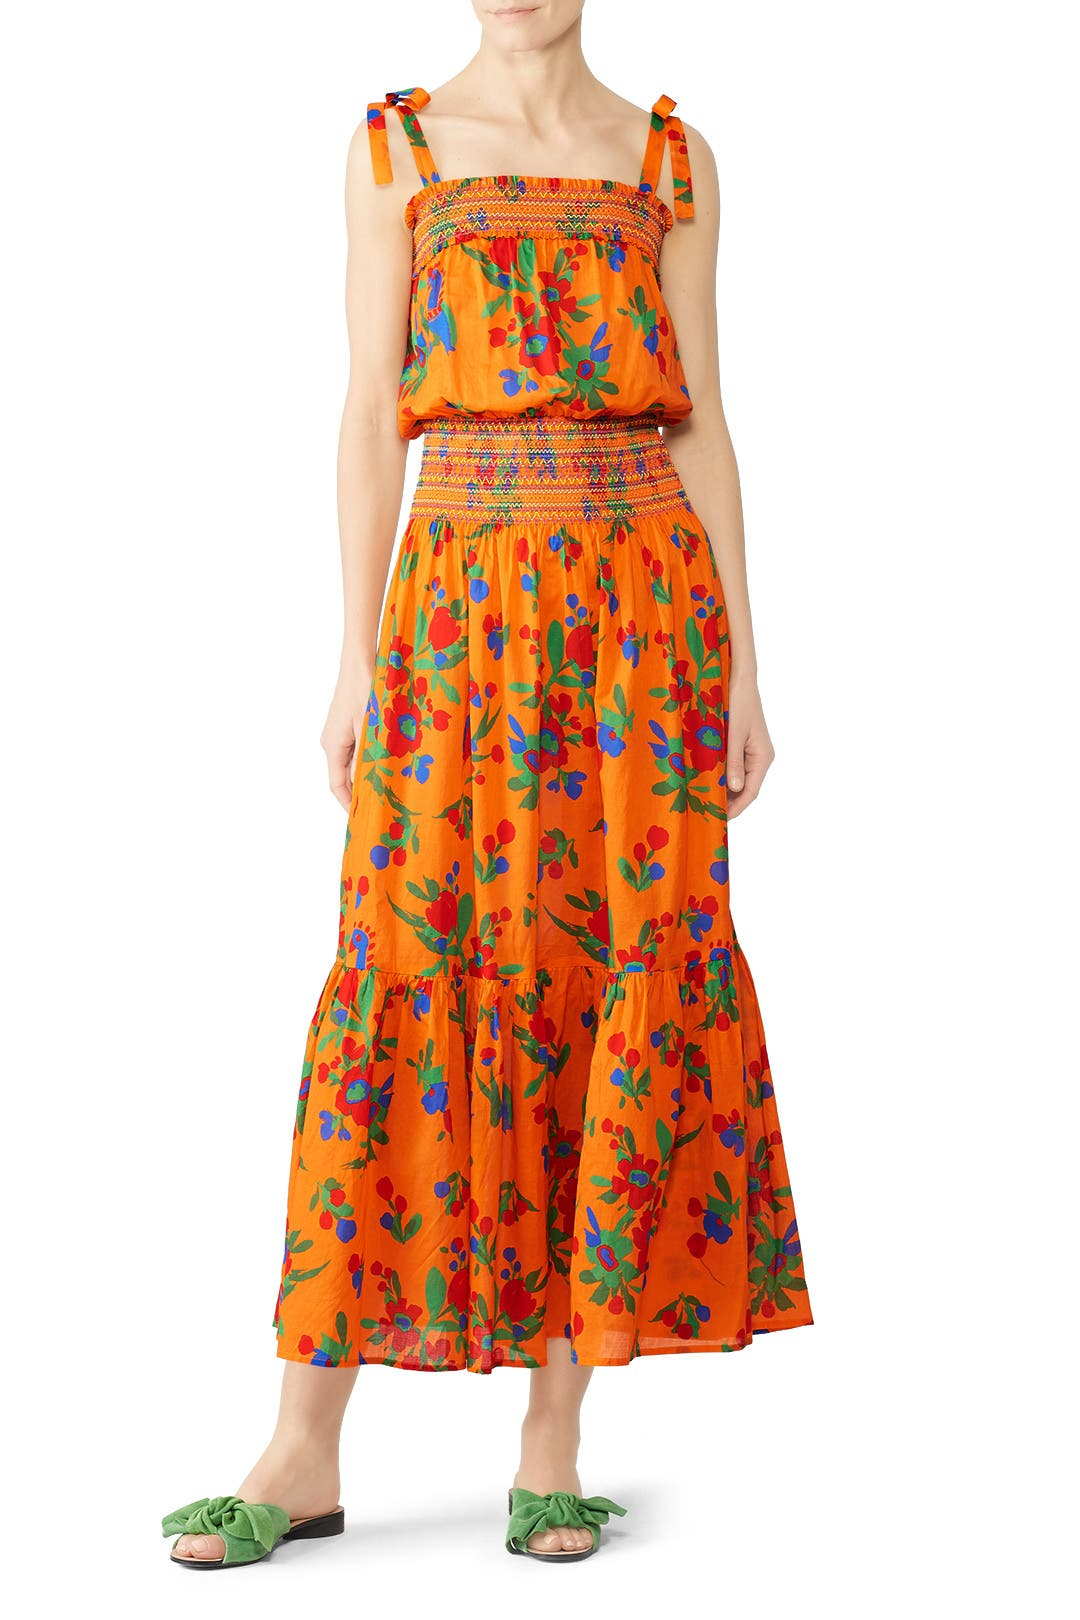 cf9839ed7c Printed Smocked Dress by Tory Burch for $75 | Rent the Runway